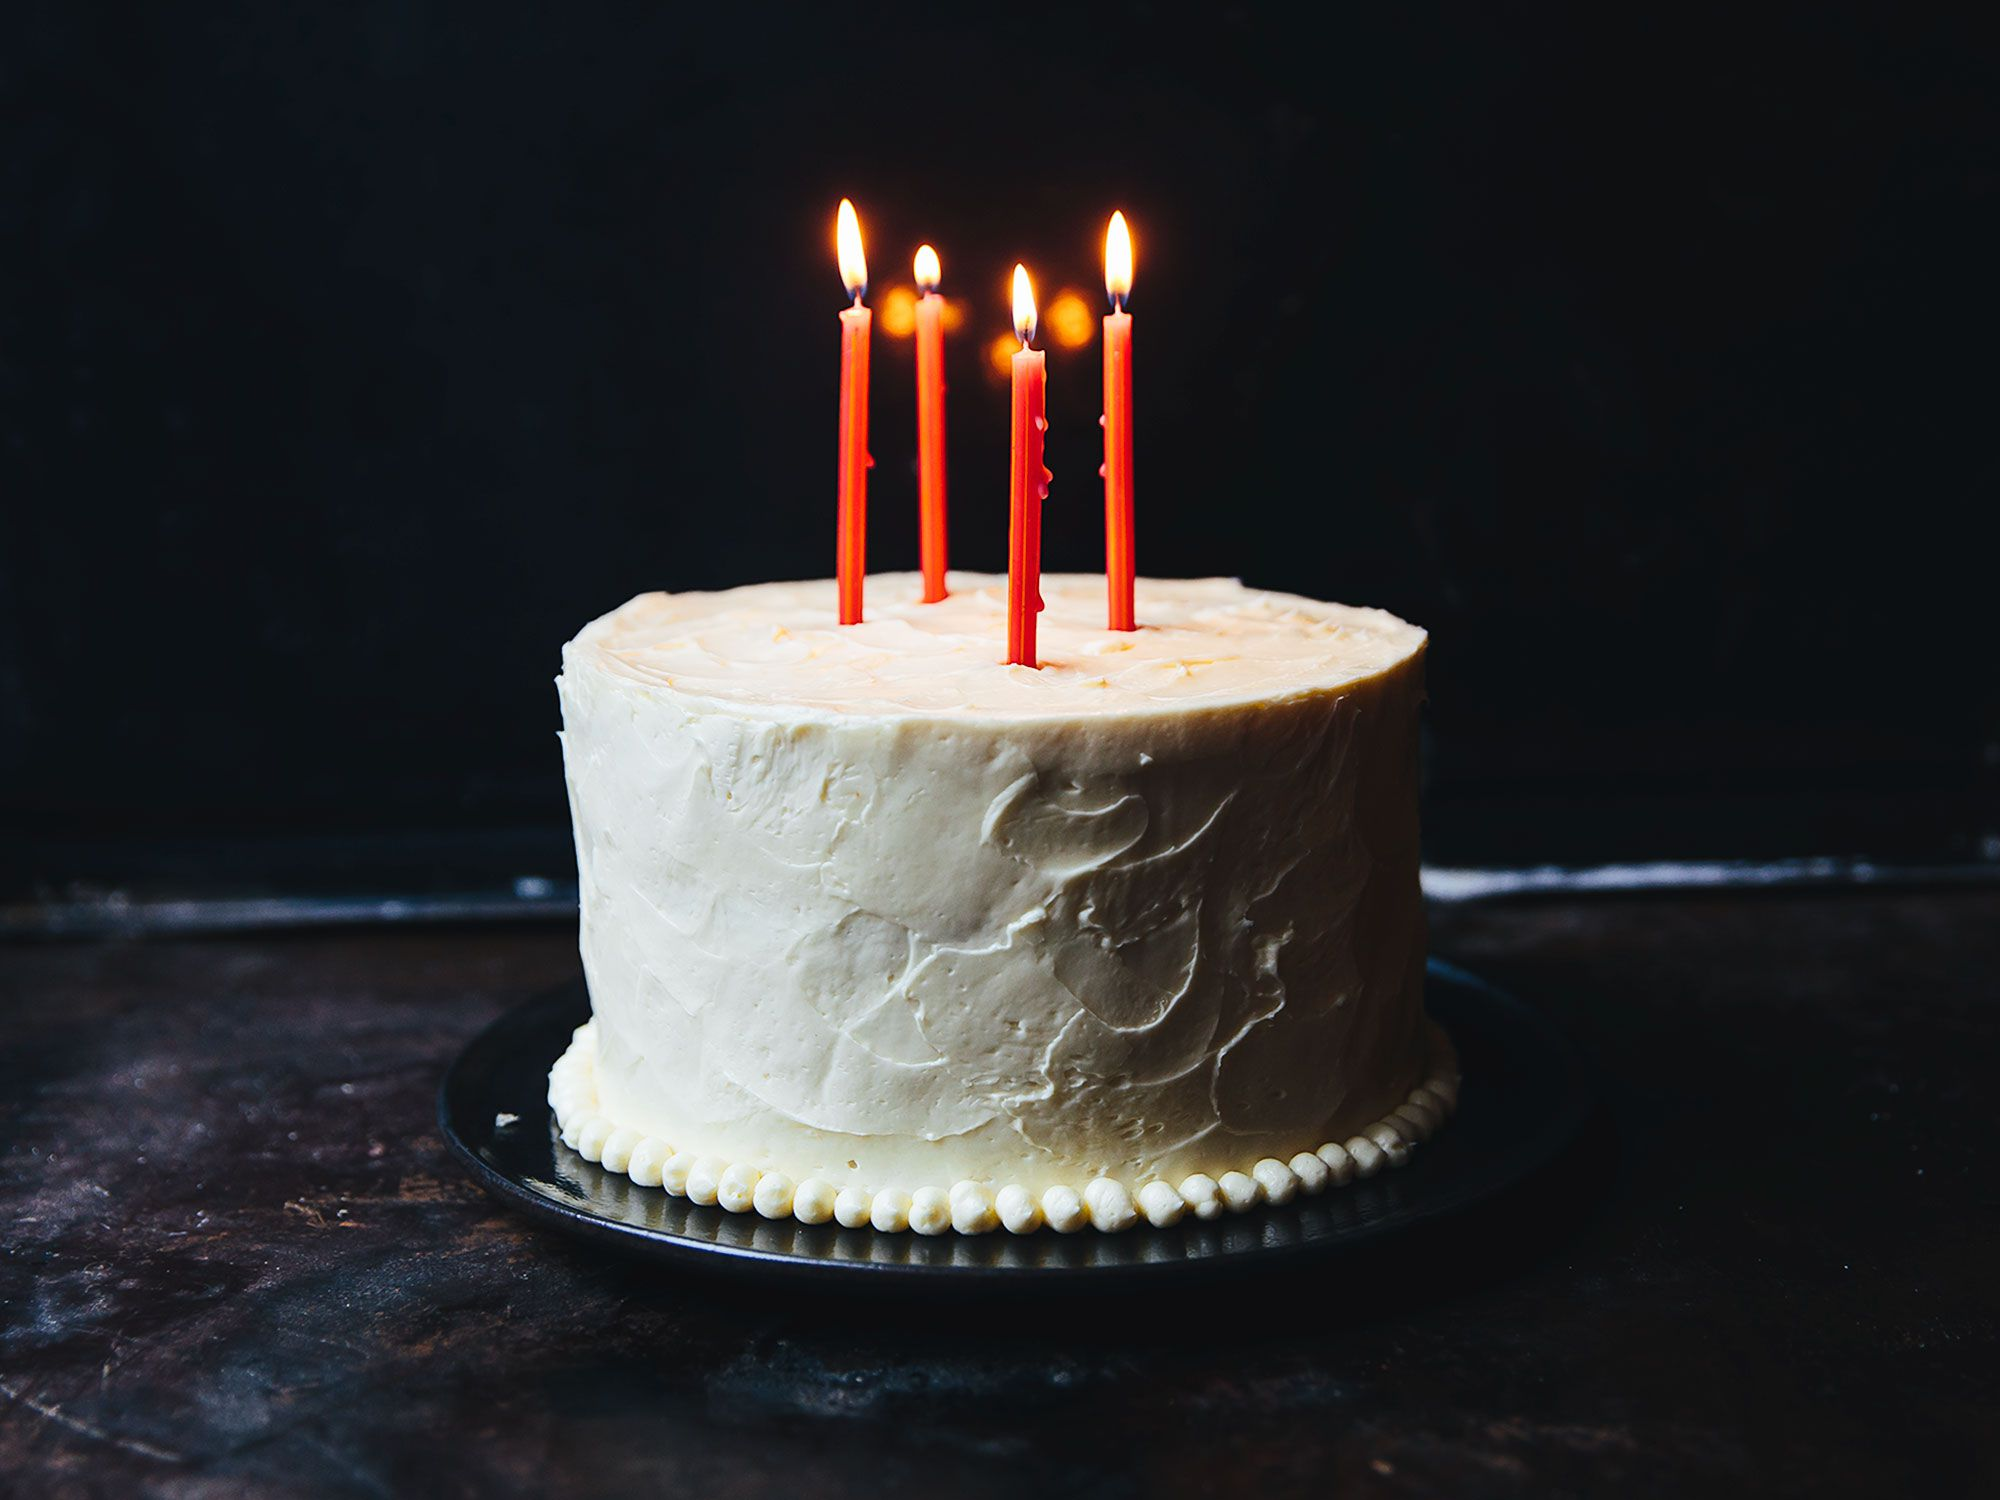 """A classic white cake recipe with a foolproof frosting. Get the recipe for <a href=""""https://www.saveur.com/best-white-layer-cake-recipe/"""">White Mountain Layer Cake with Marshmallow Buttercream</a>"""